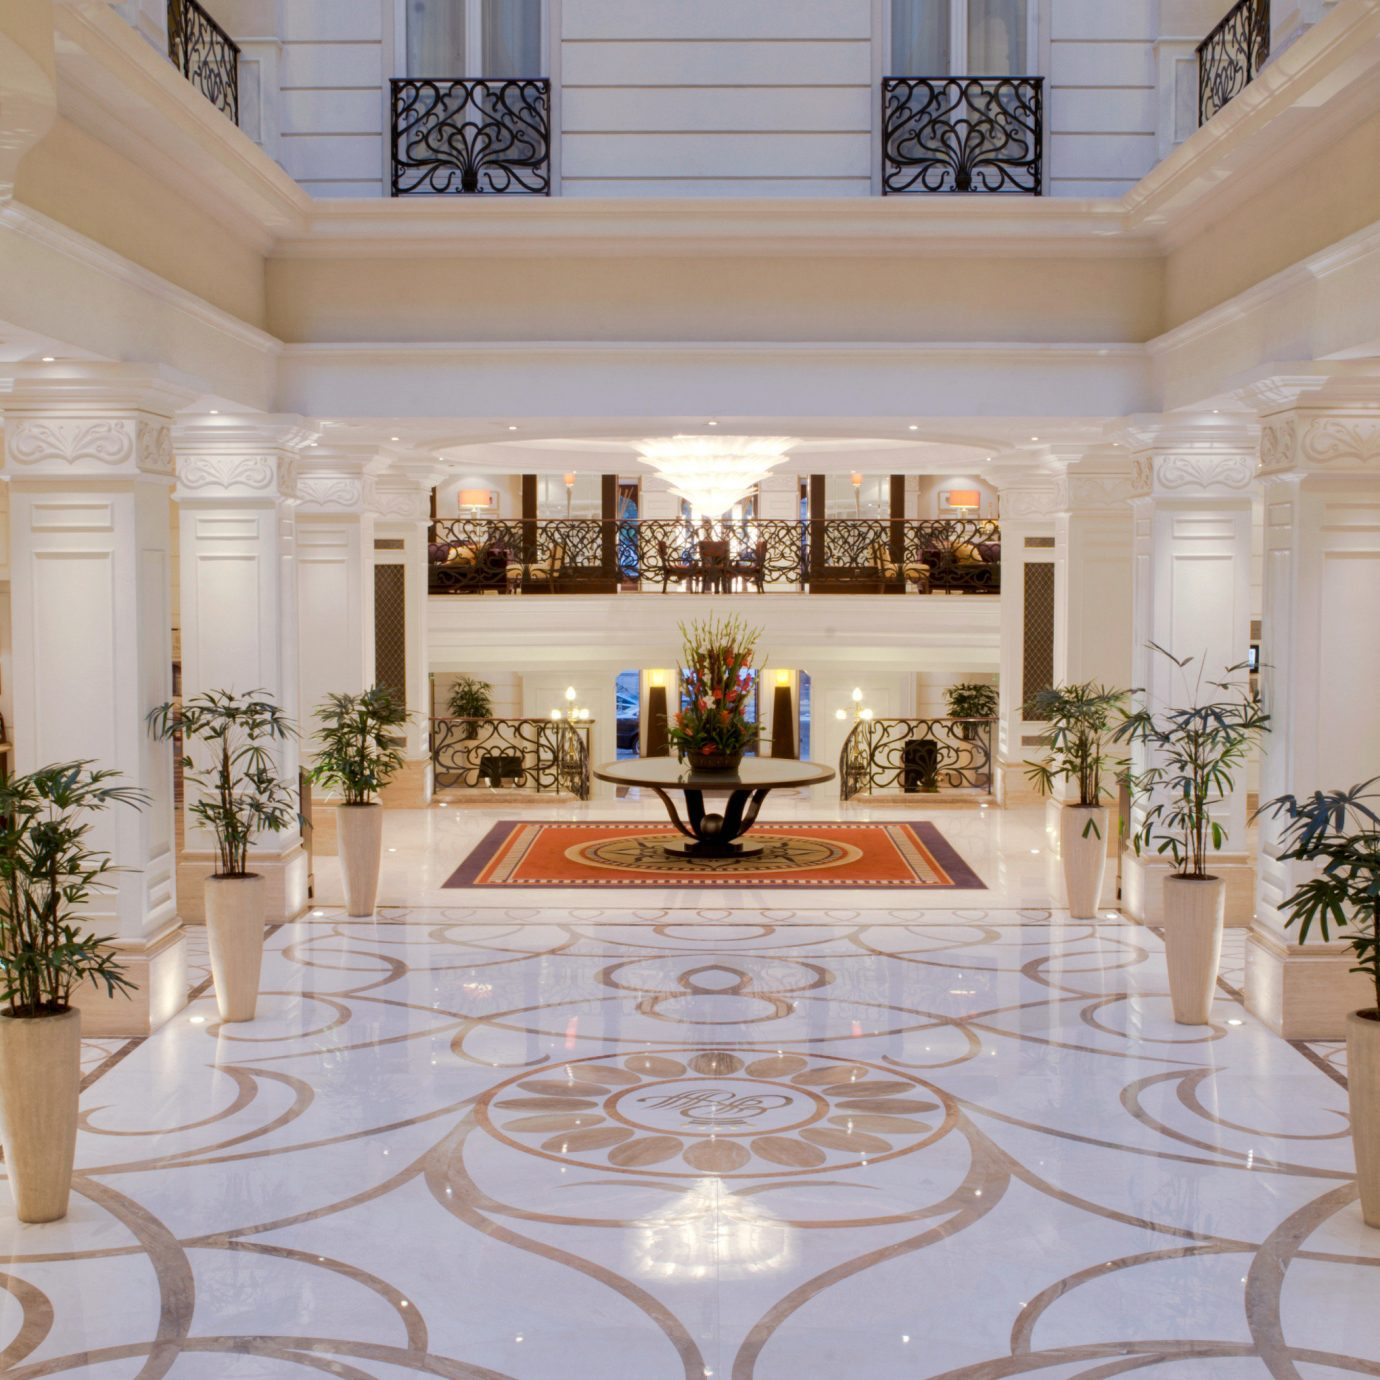 Lobby property mansion palace white living room home flooring ballroom function hall hall Dining fancy